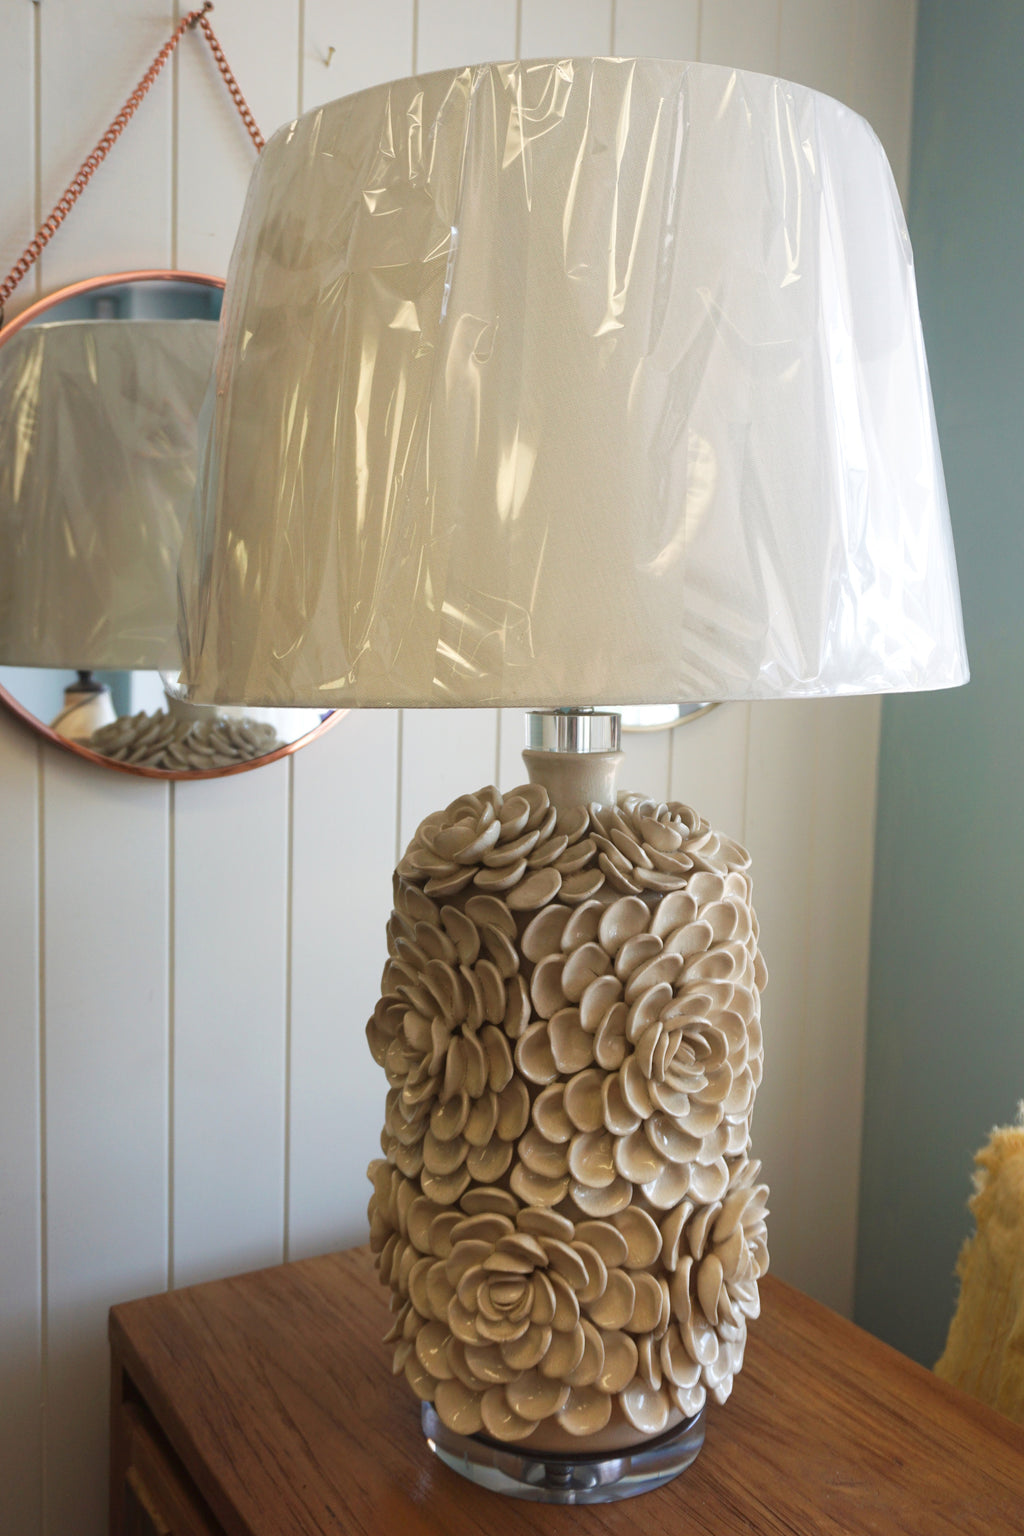 Cream Rose and White Lamp